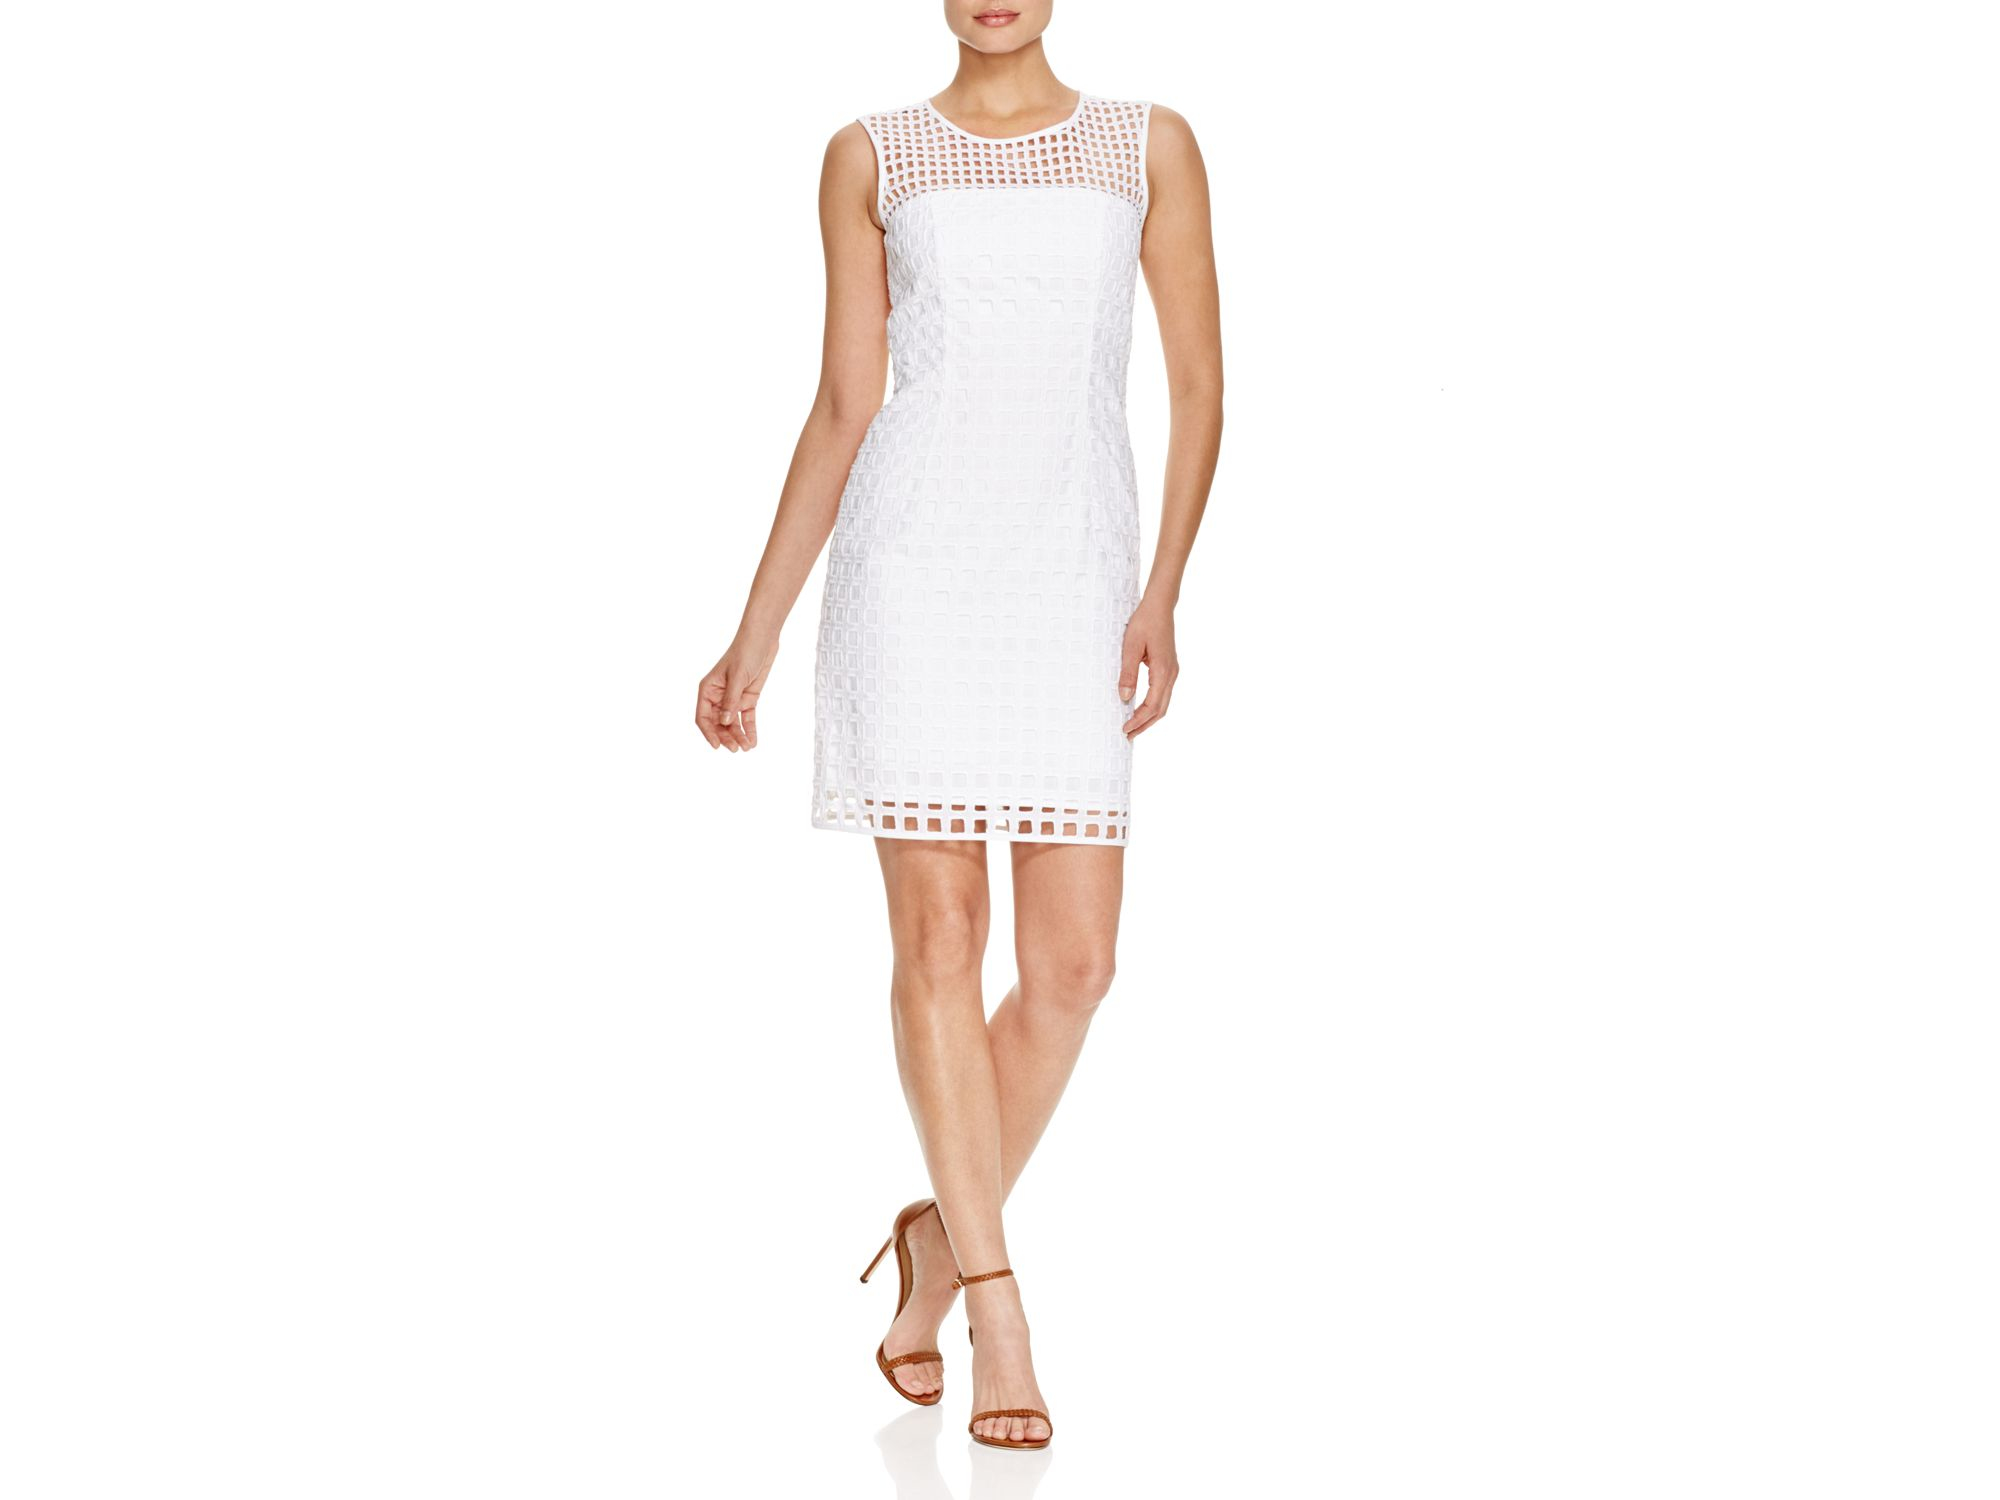 2774d83d MILLY Chloe Eyelet Illusion Dress - 100% Bloomingdale's Exclusive in ...